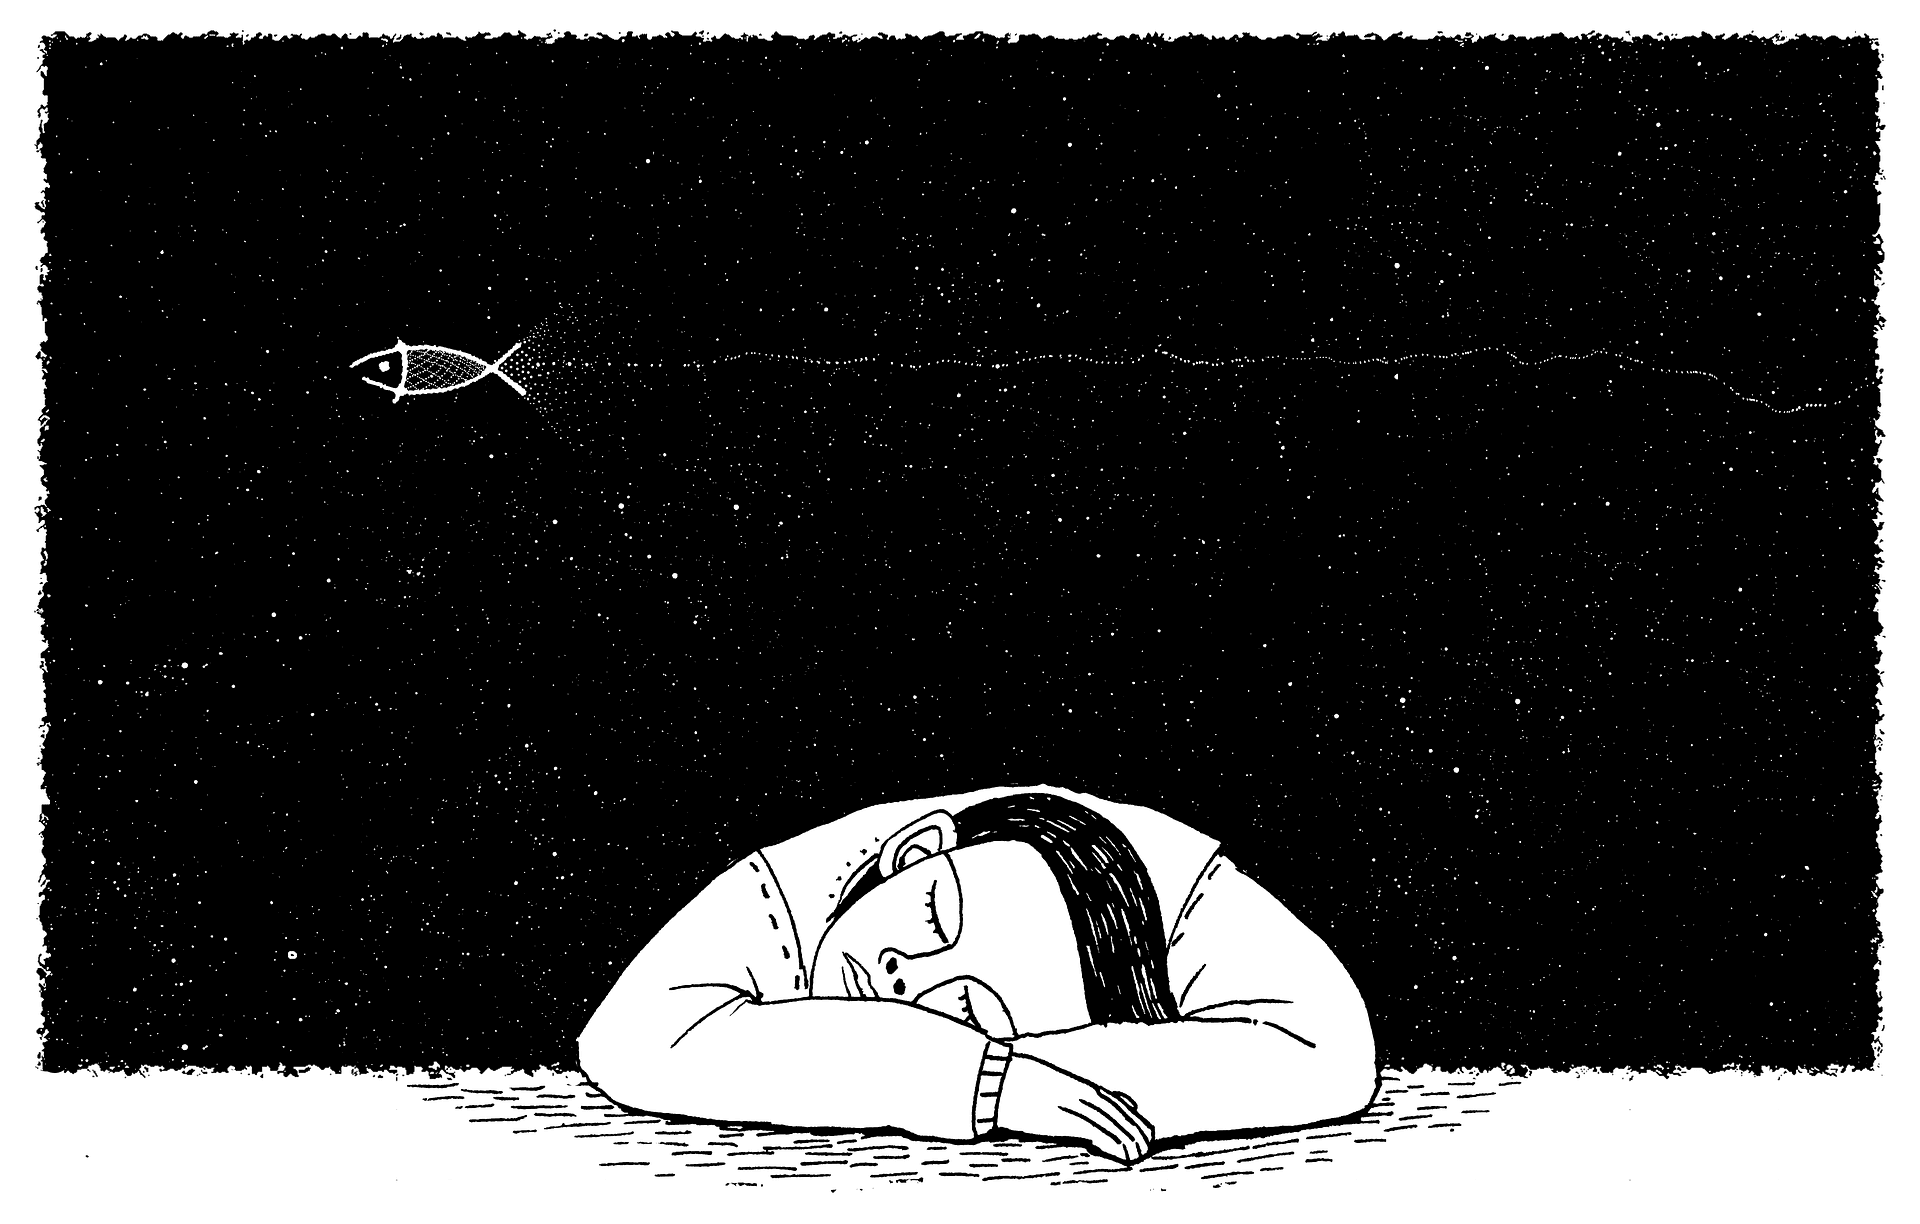 Cartoon of a person dreaming   Source: Pixabay